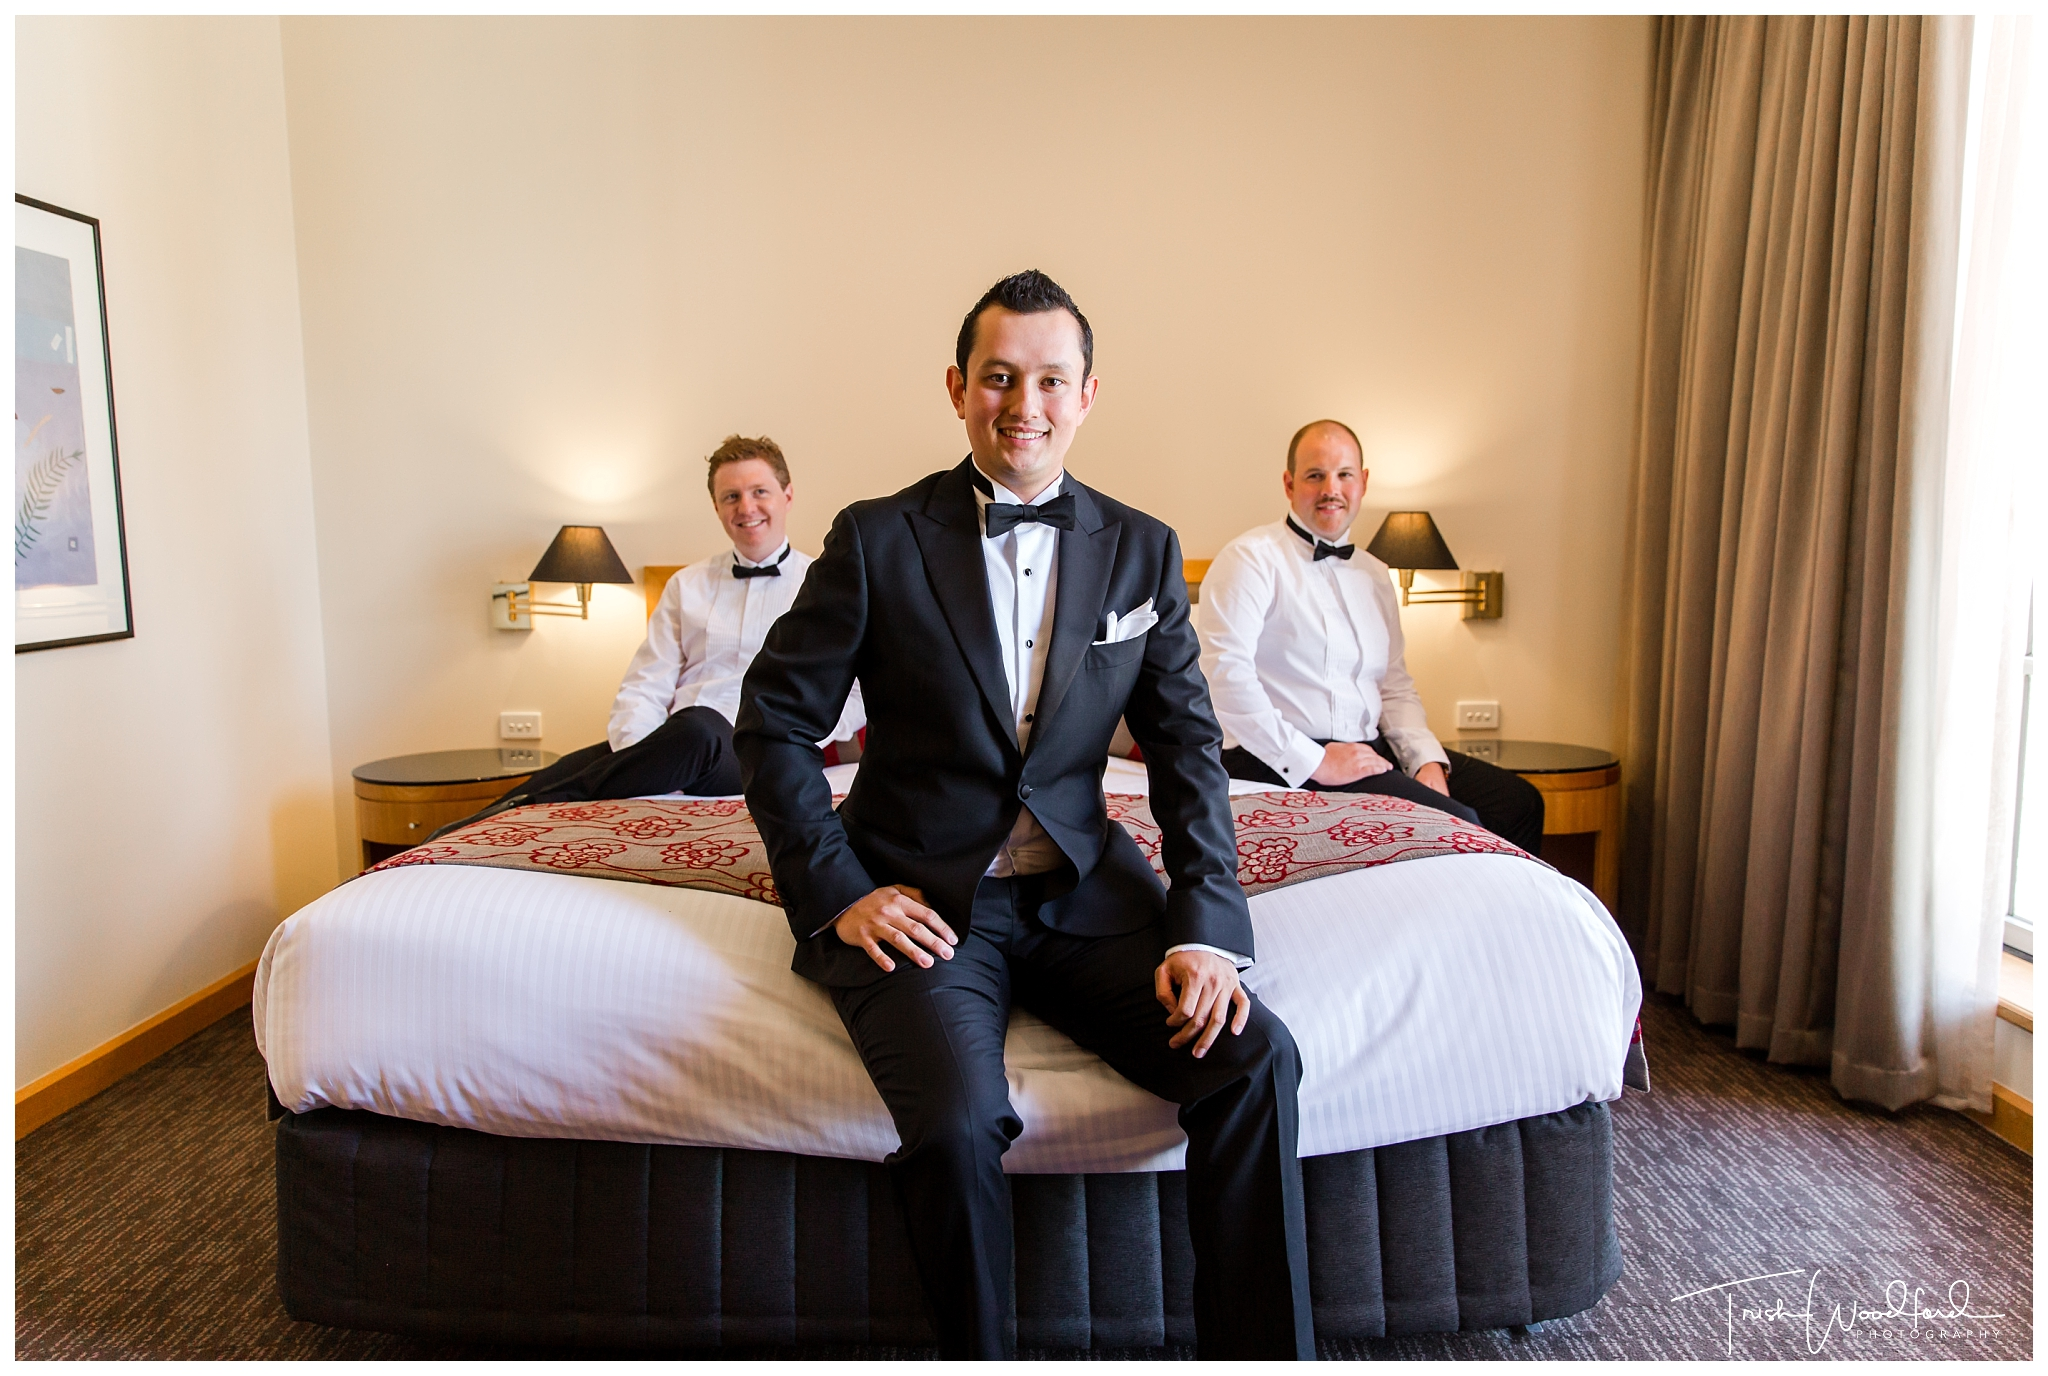 Groom & Groomsmen Perth Wedding